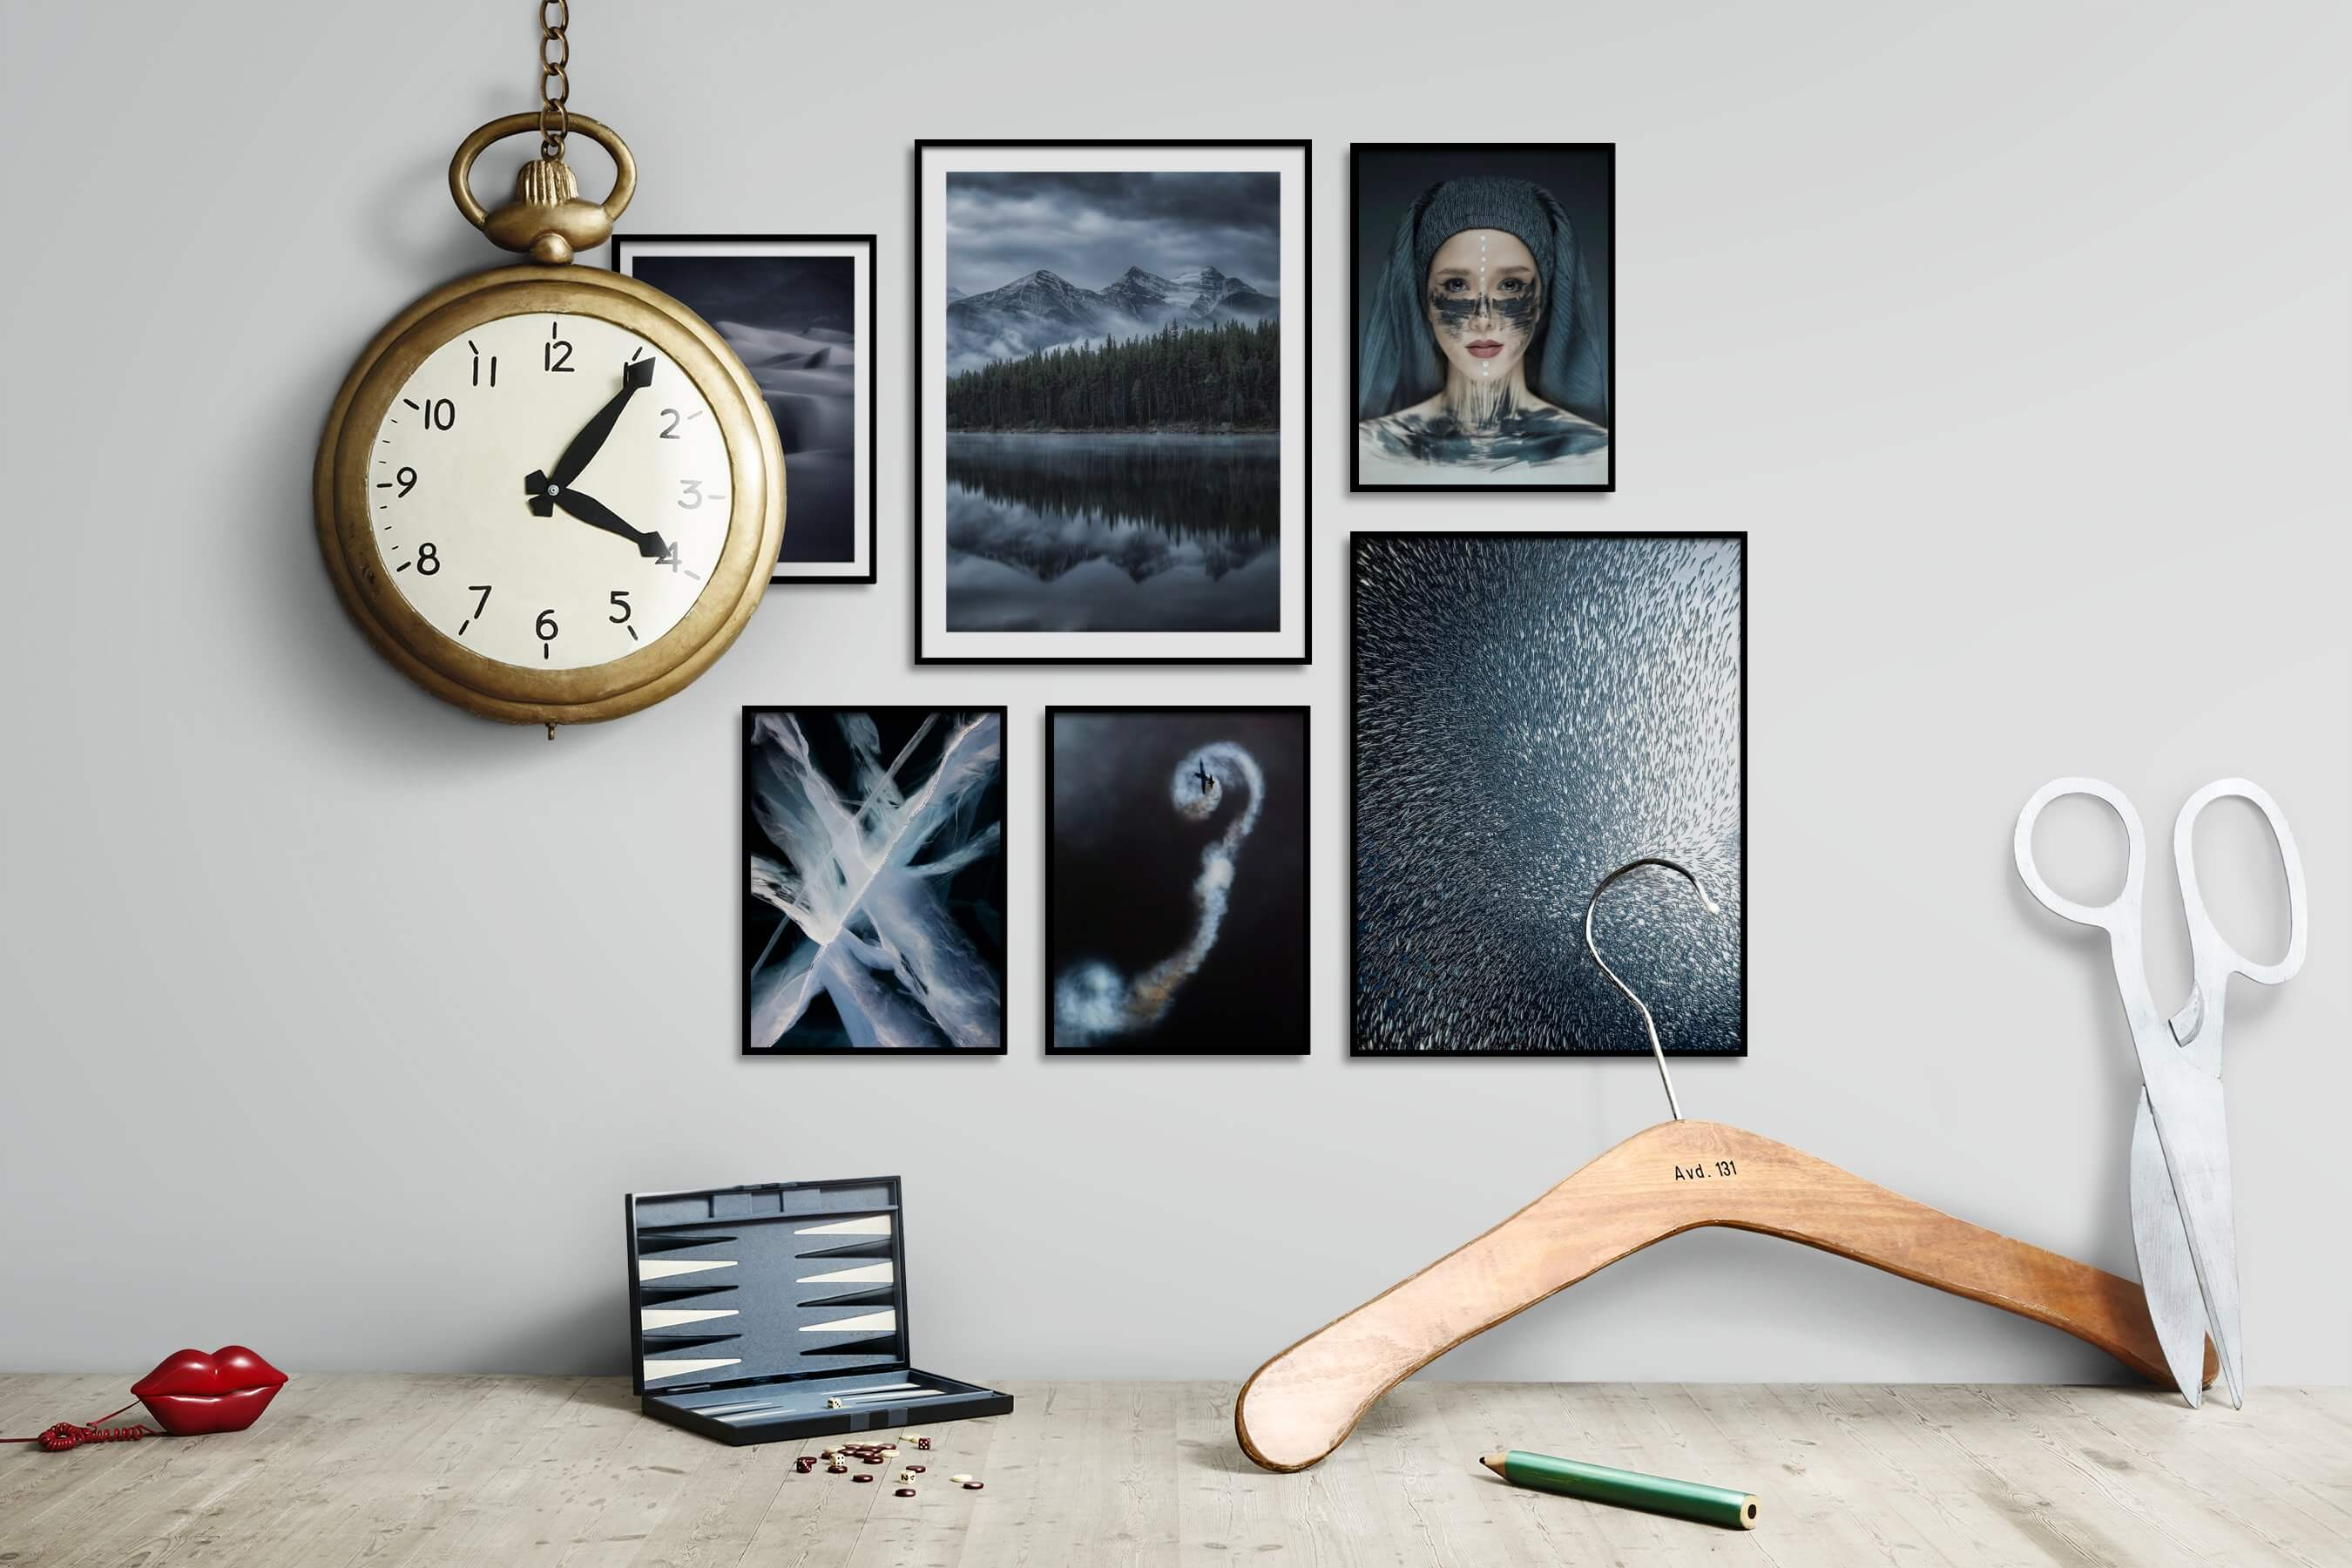 Gallery wall idea with six framed pictures arranged on a wall depicting Black & White, For the Moderate, Nature, Dark Tones, For the Minimalist, Fashion & Beauty, and Animals